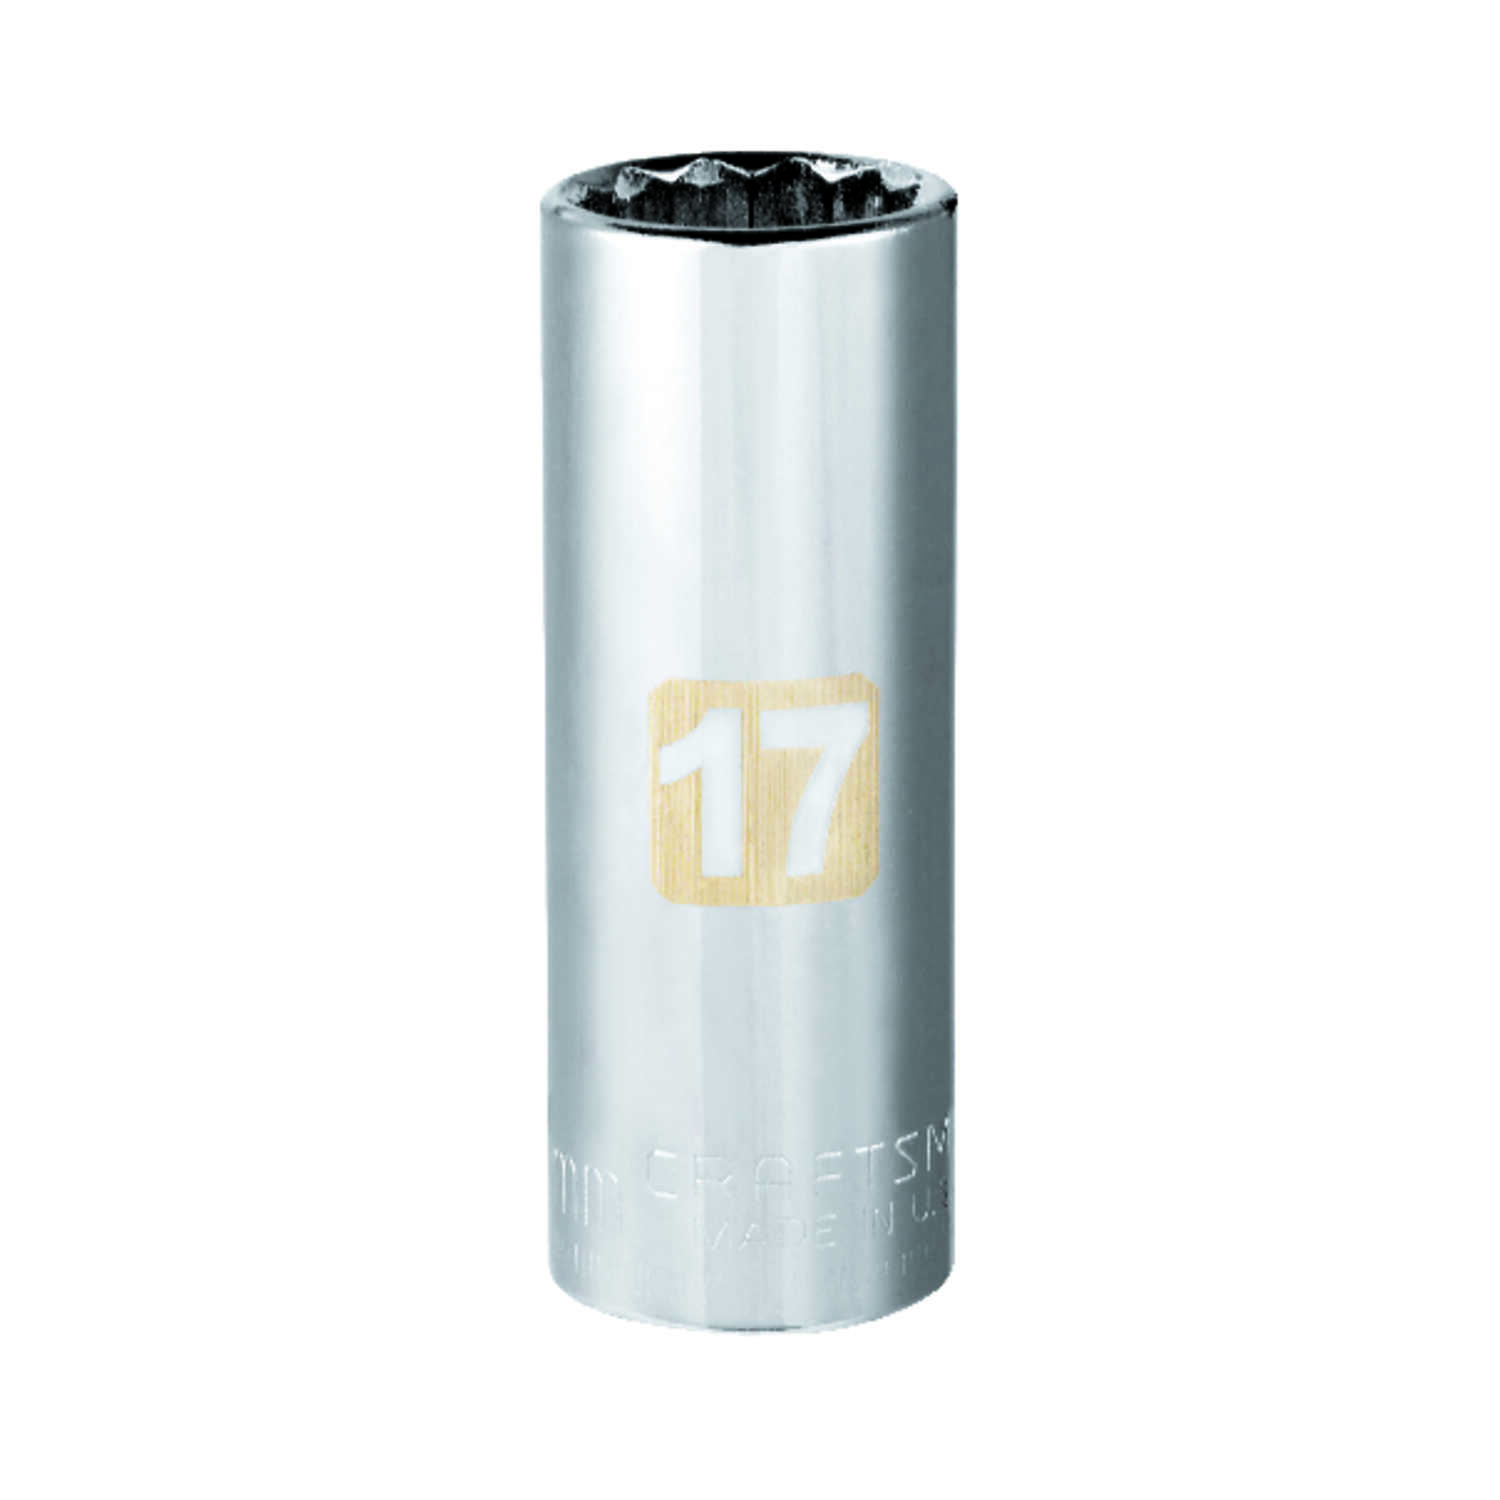 Craftsman  17 mm  x 3/8 in. drive  Metric  12 Point Deep  Socket  1 pc.